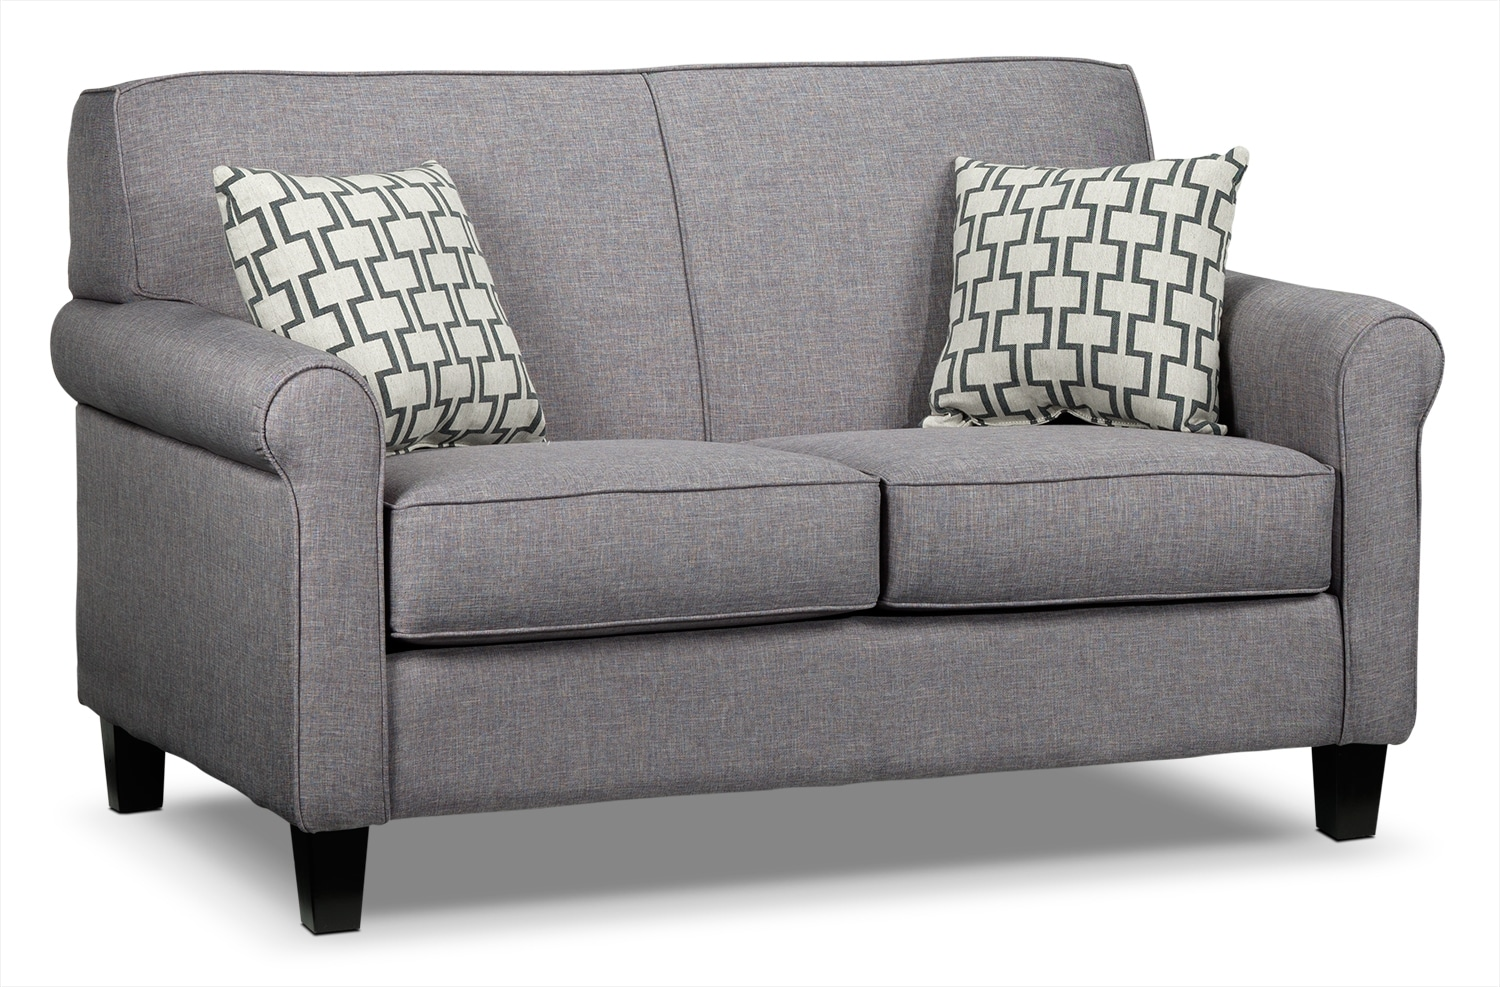 Living Room Furniture - Ariel Loveseat - Silver-Grey